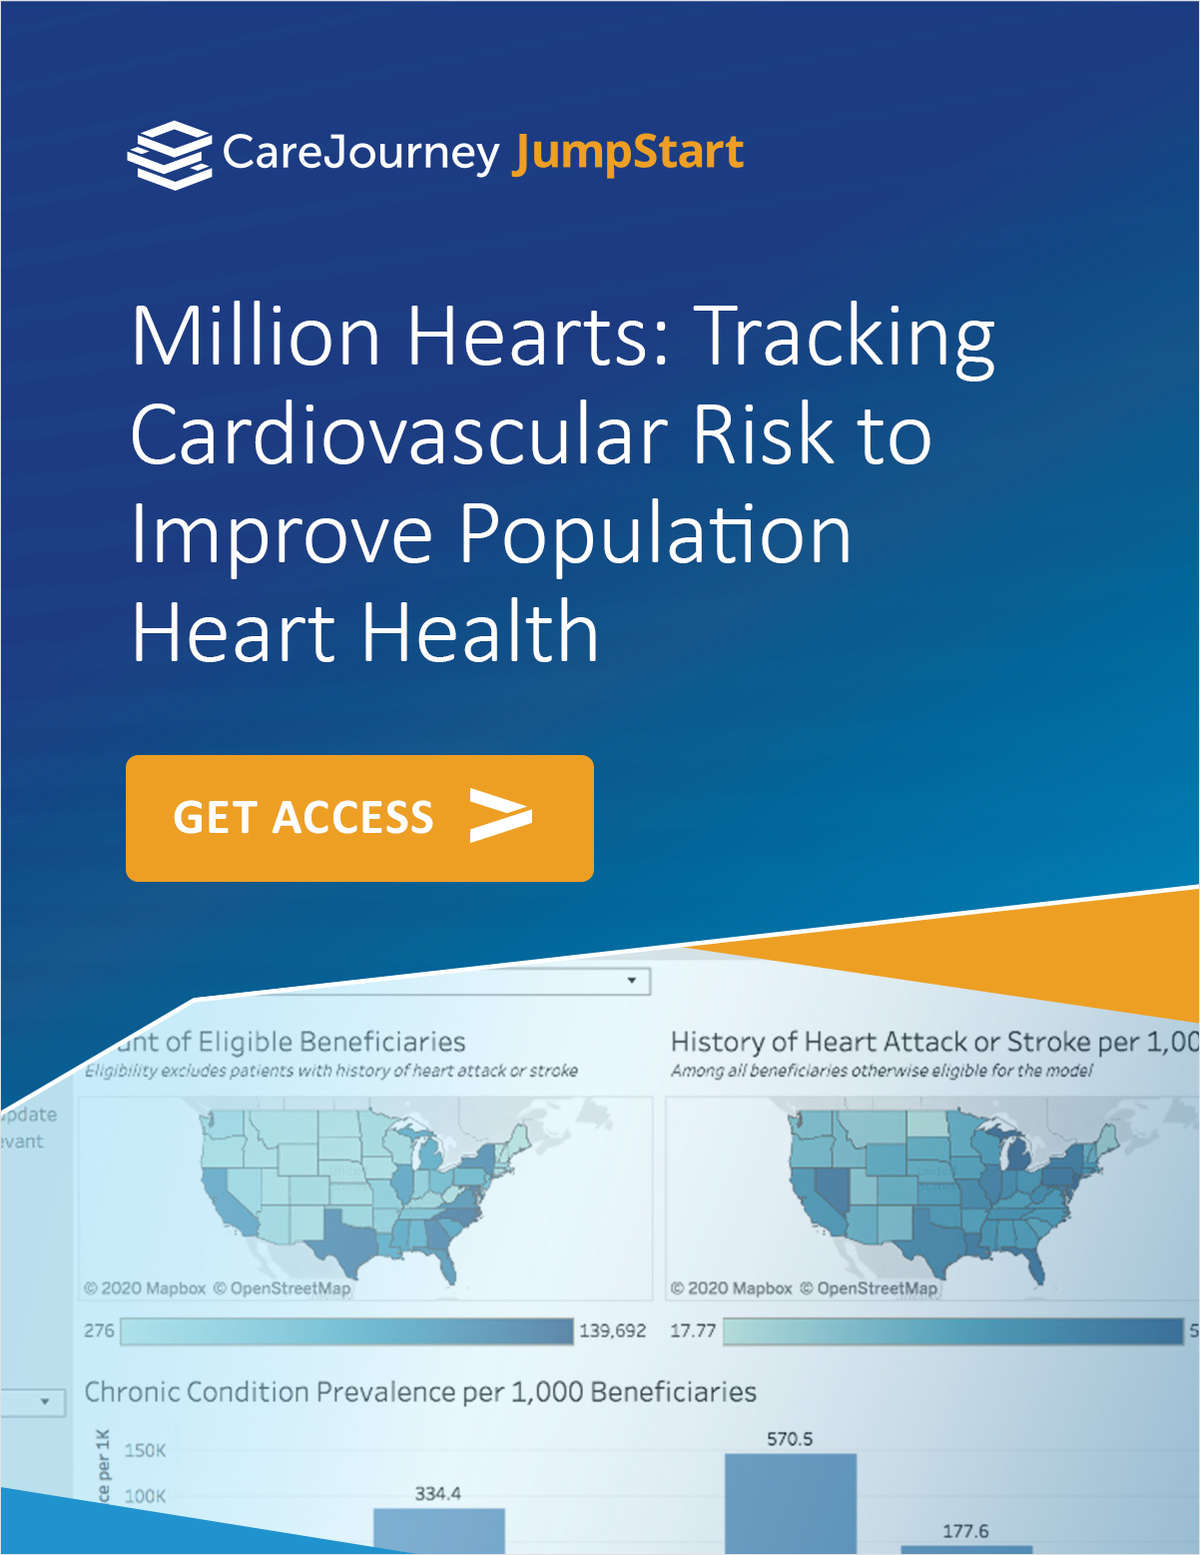 Million Hearts: Tracking Cardiovascular Risk to Improve Population Heart Health